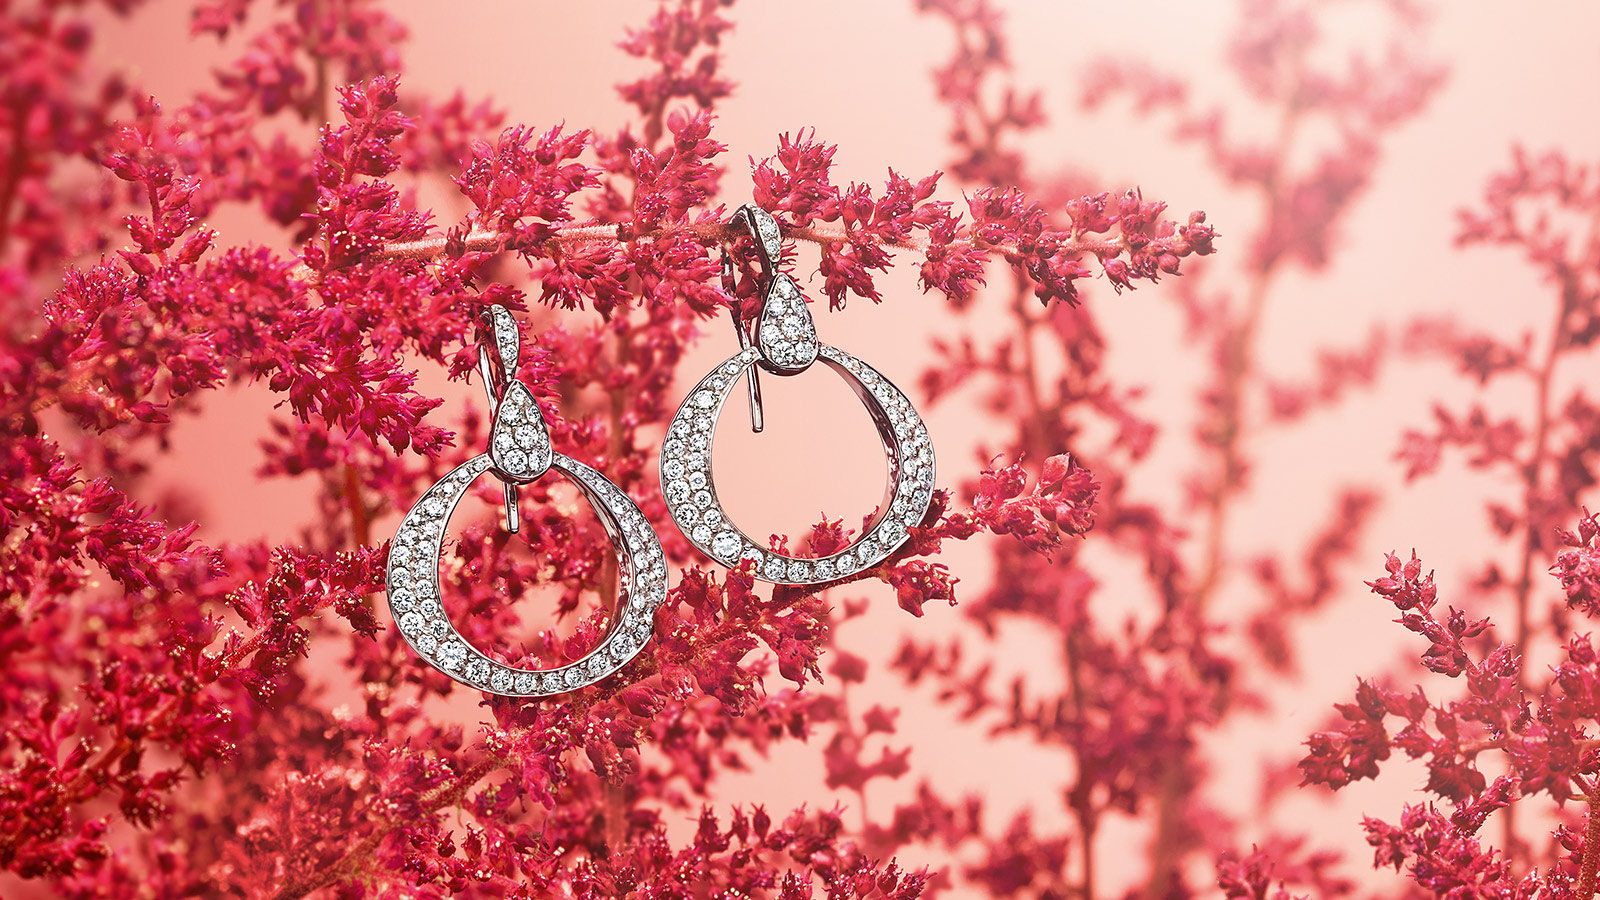 Omega Dewdrop Earring Omega Dewdrop Earring - E57BCA0200405 - View 1